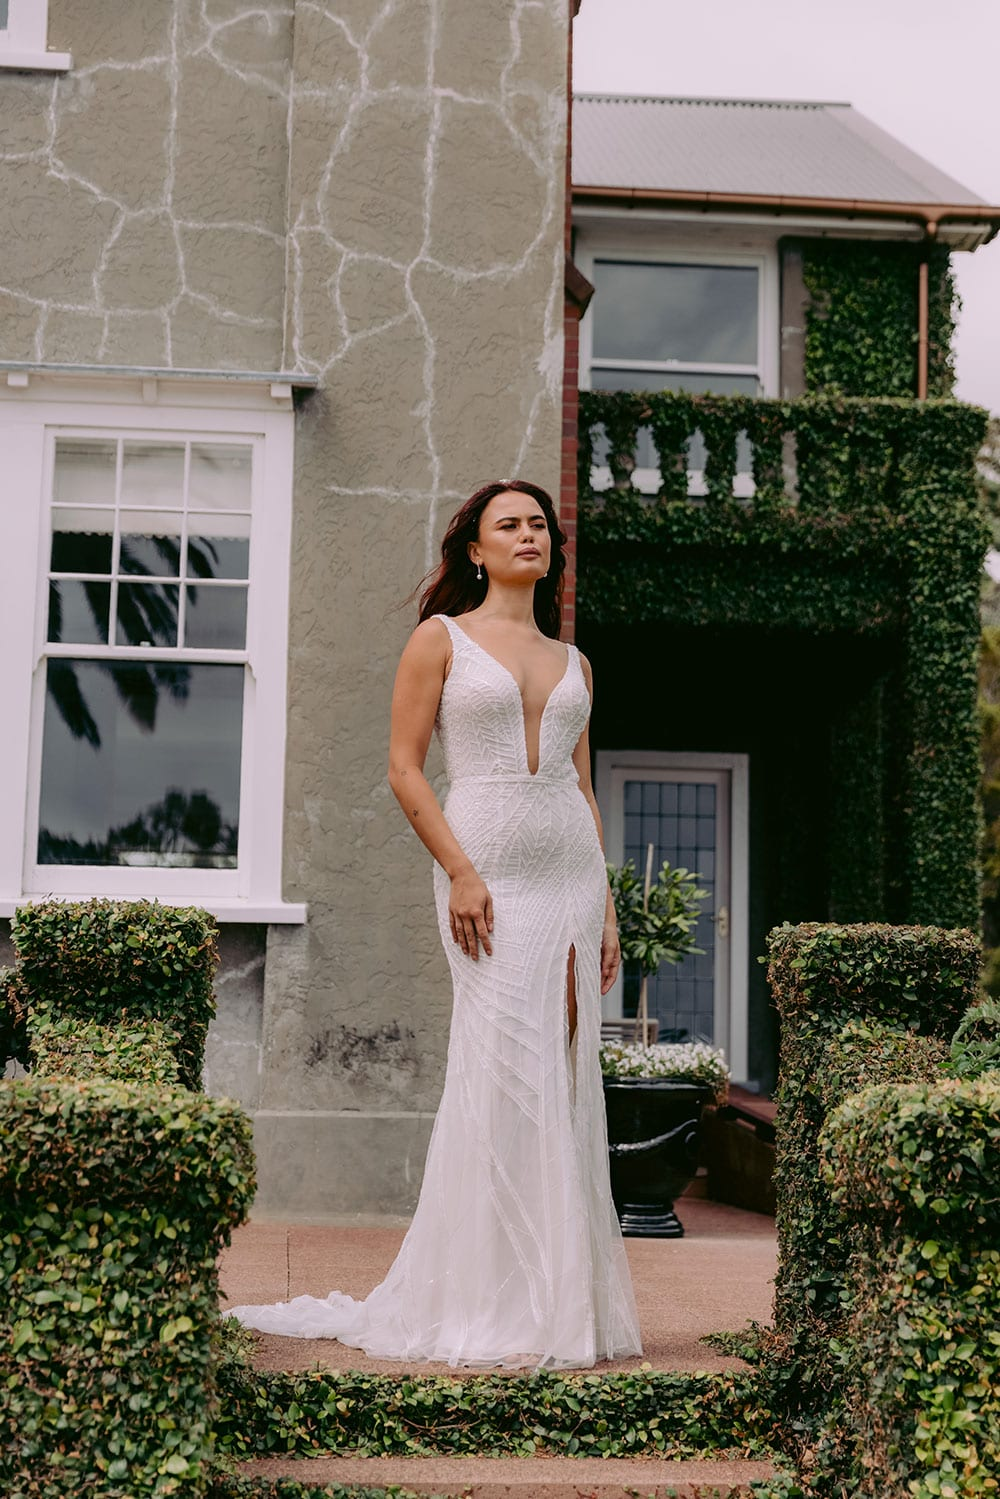 Elle Wedding gown from Vinka Design - Wedding dress with illusion neckline and deep plunge in the front with low back. Stunning beaded embroidery over a stretch base that sculpts and flatters the figure and falls into a beautiful flared train. Model wearing gown on steps in beautiful gardens.